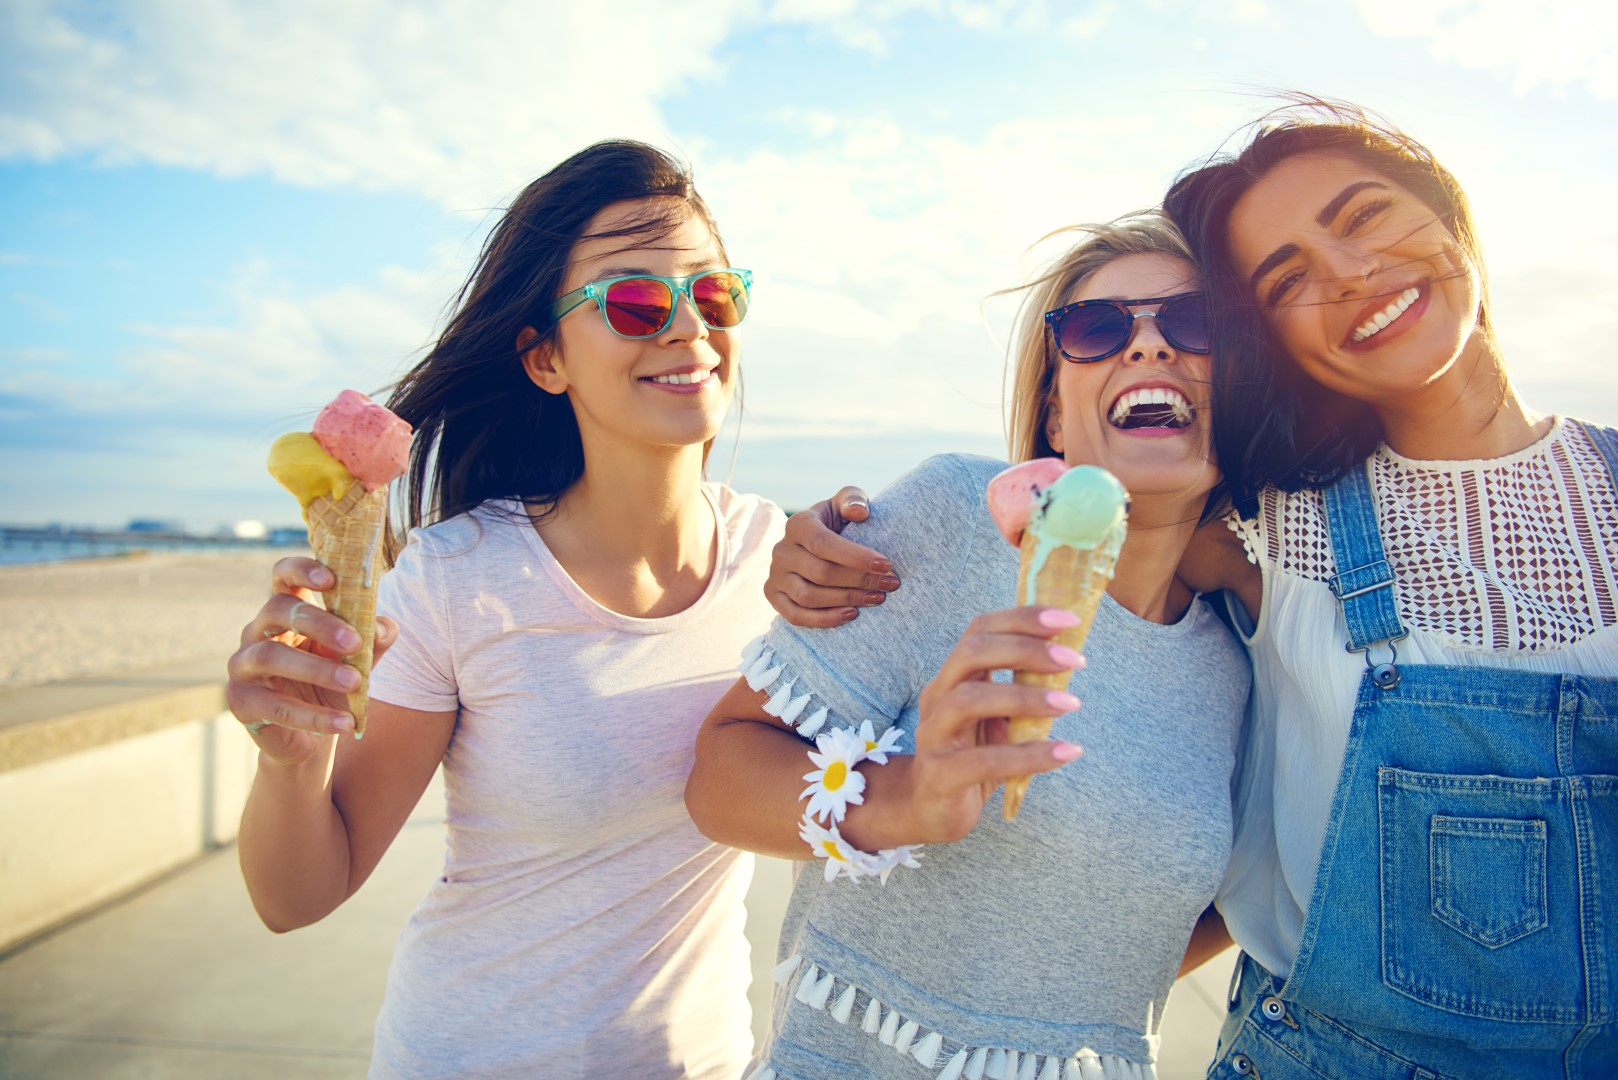 Laughing teenage girls eating ice cream cones as they walk along a beachfront promenade arm in arm enjoying their summer vacation